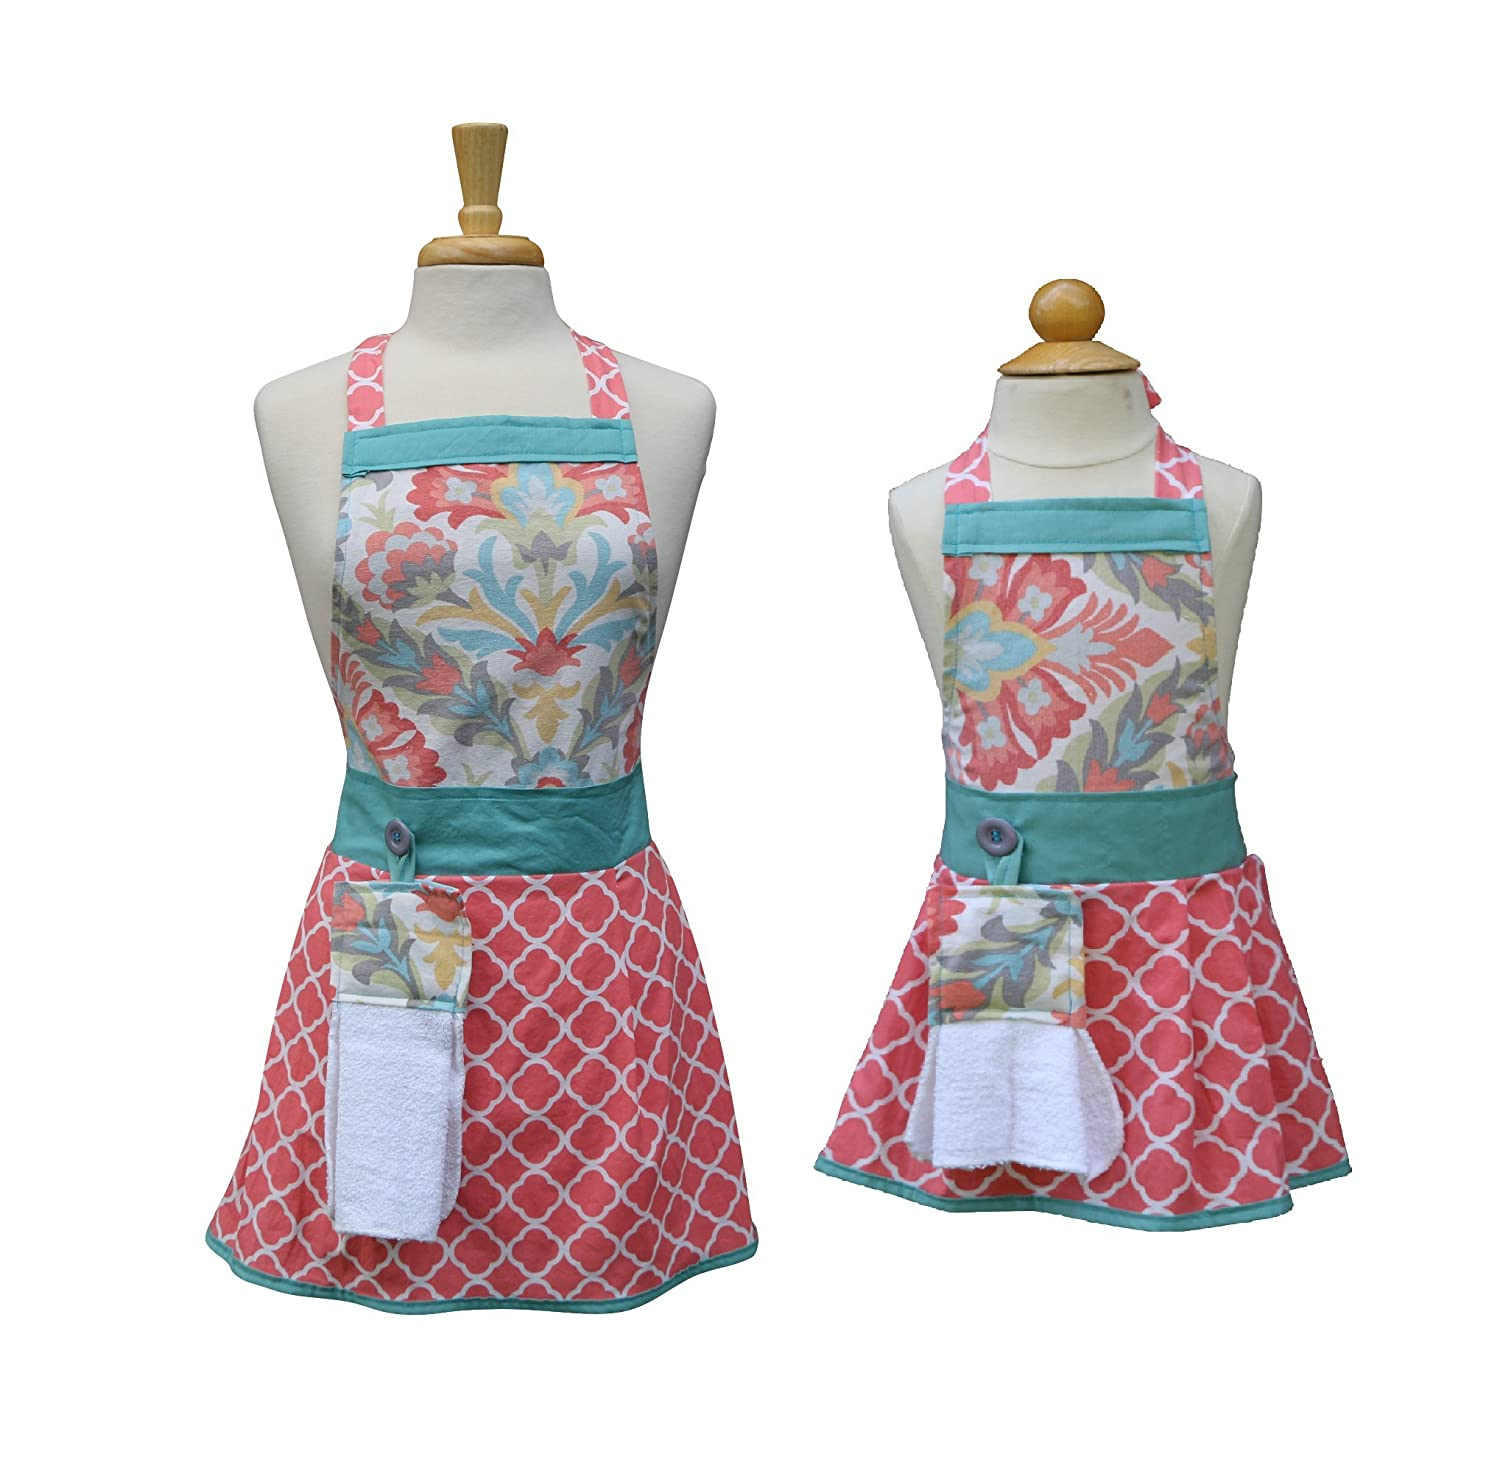 Mom Daughter aprons, Mother Daughter matching aprons, Mommy Daughter apron set, The Bedford Life, Kids / Girls S M L (Age 2-13 ) , Kitchen aprons, cooking aprons, baking aprons